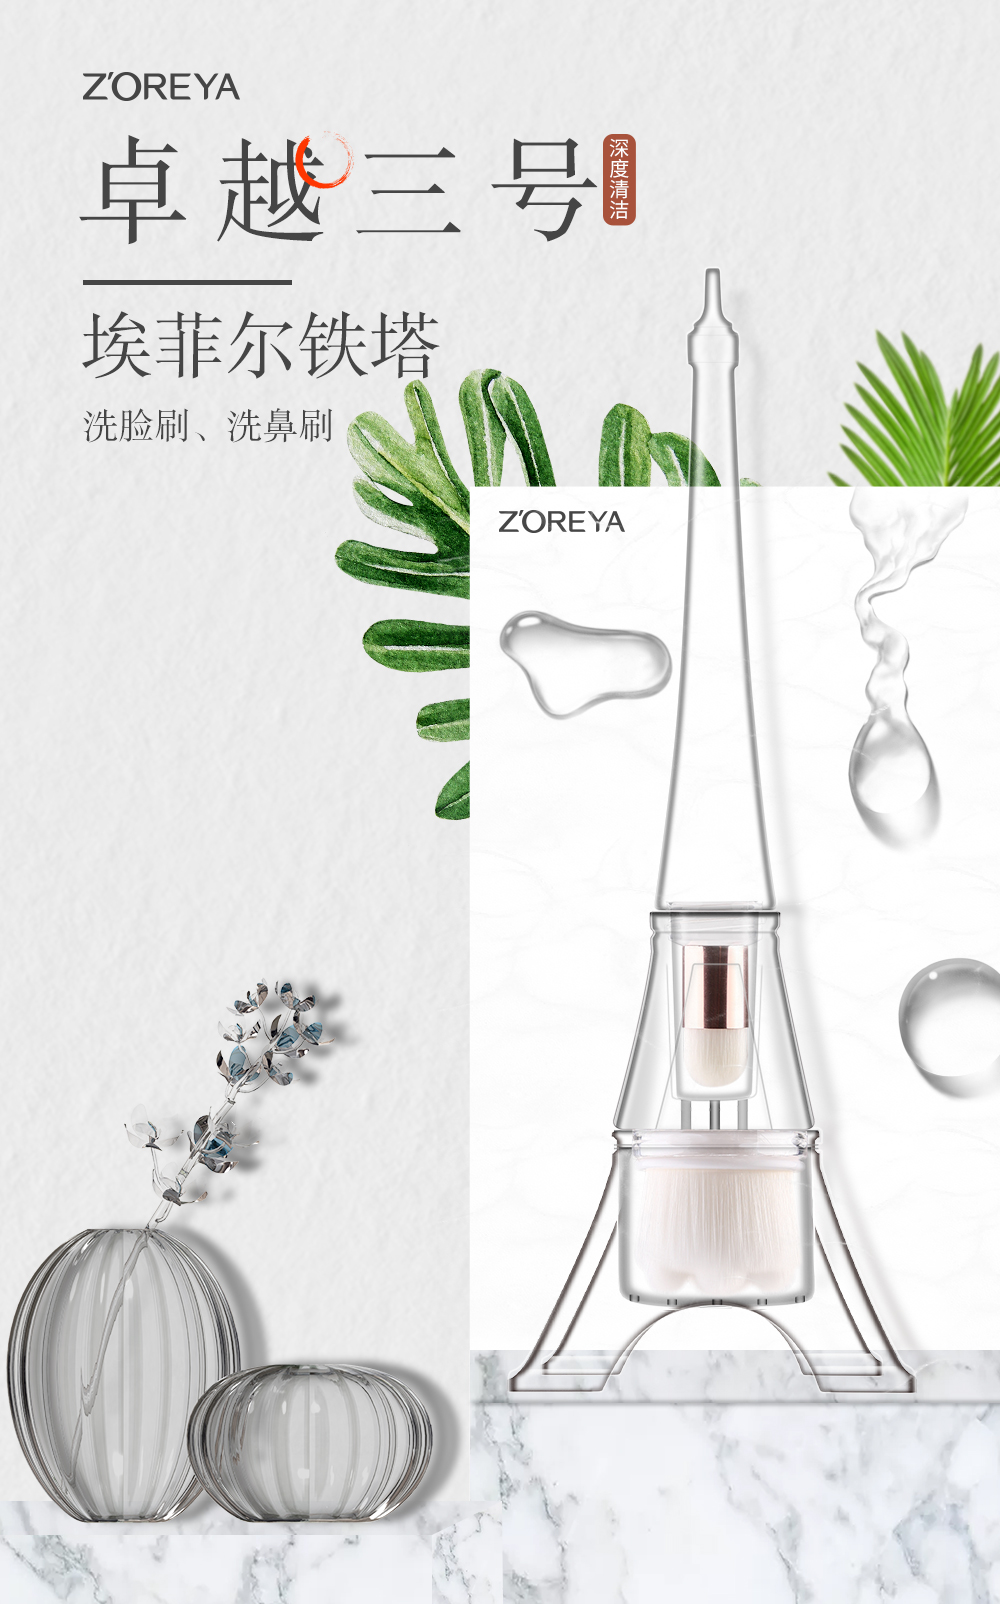 2 in 1 multi-functional Eiffel Tower makeup brush new patent product maquillage